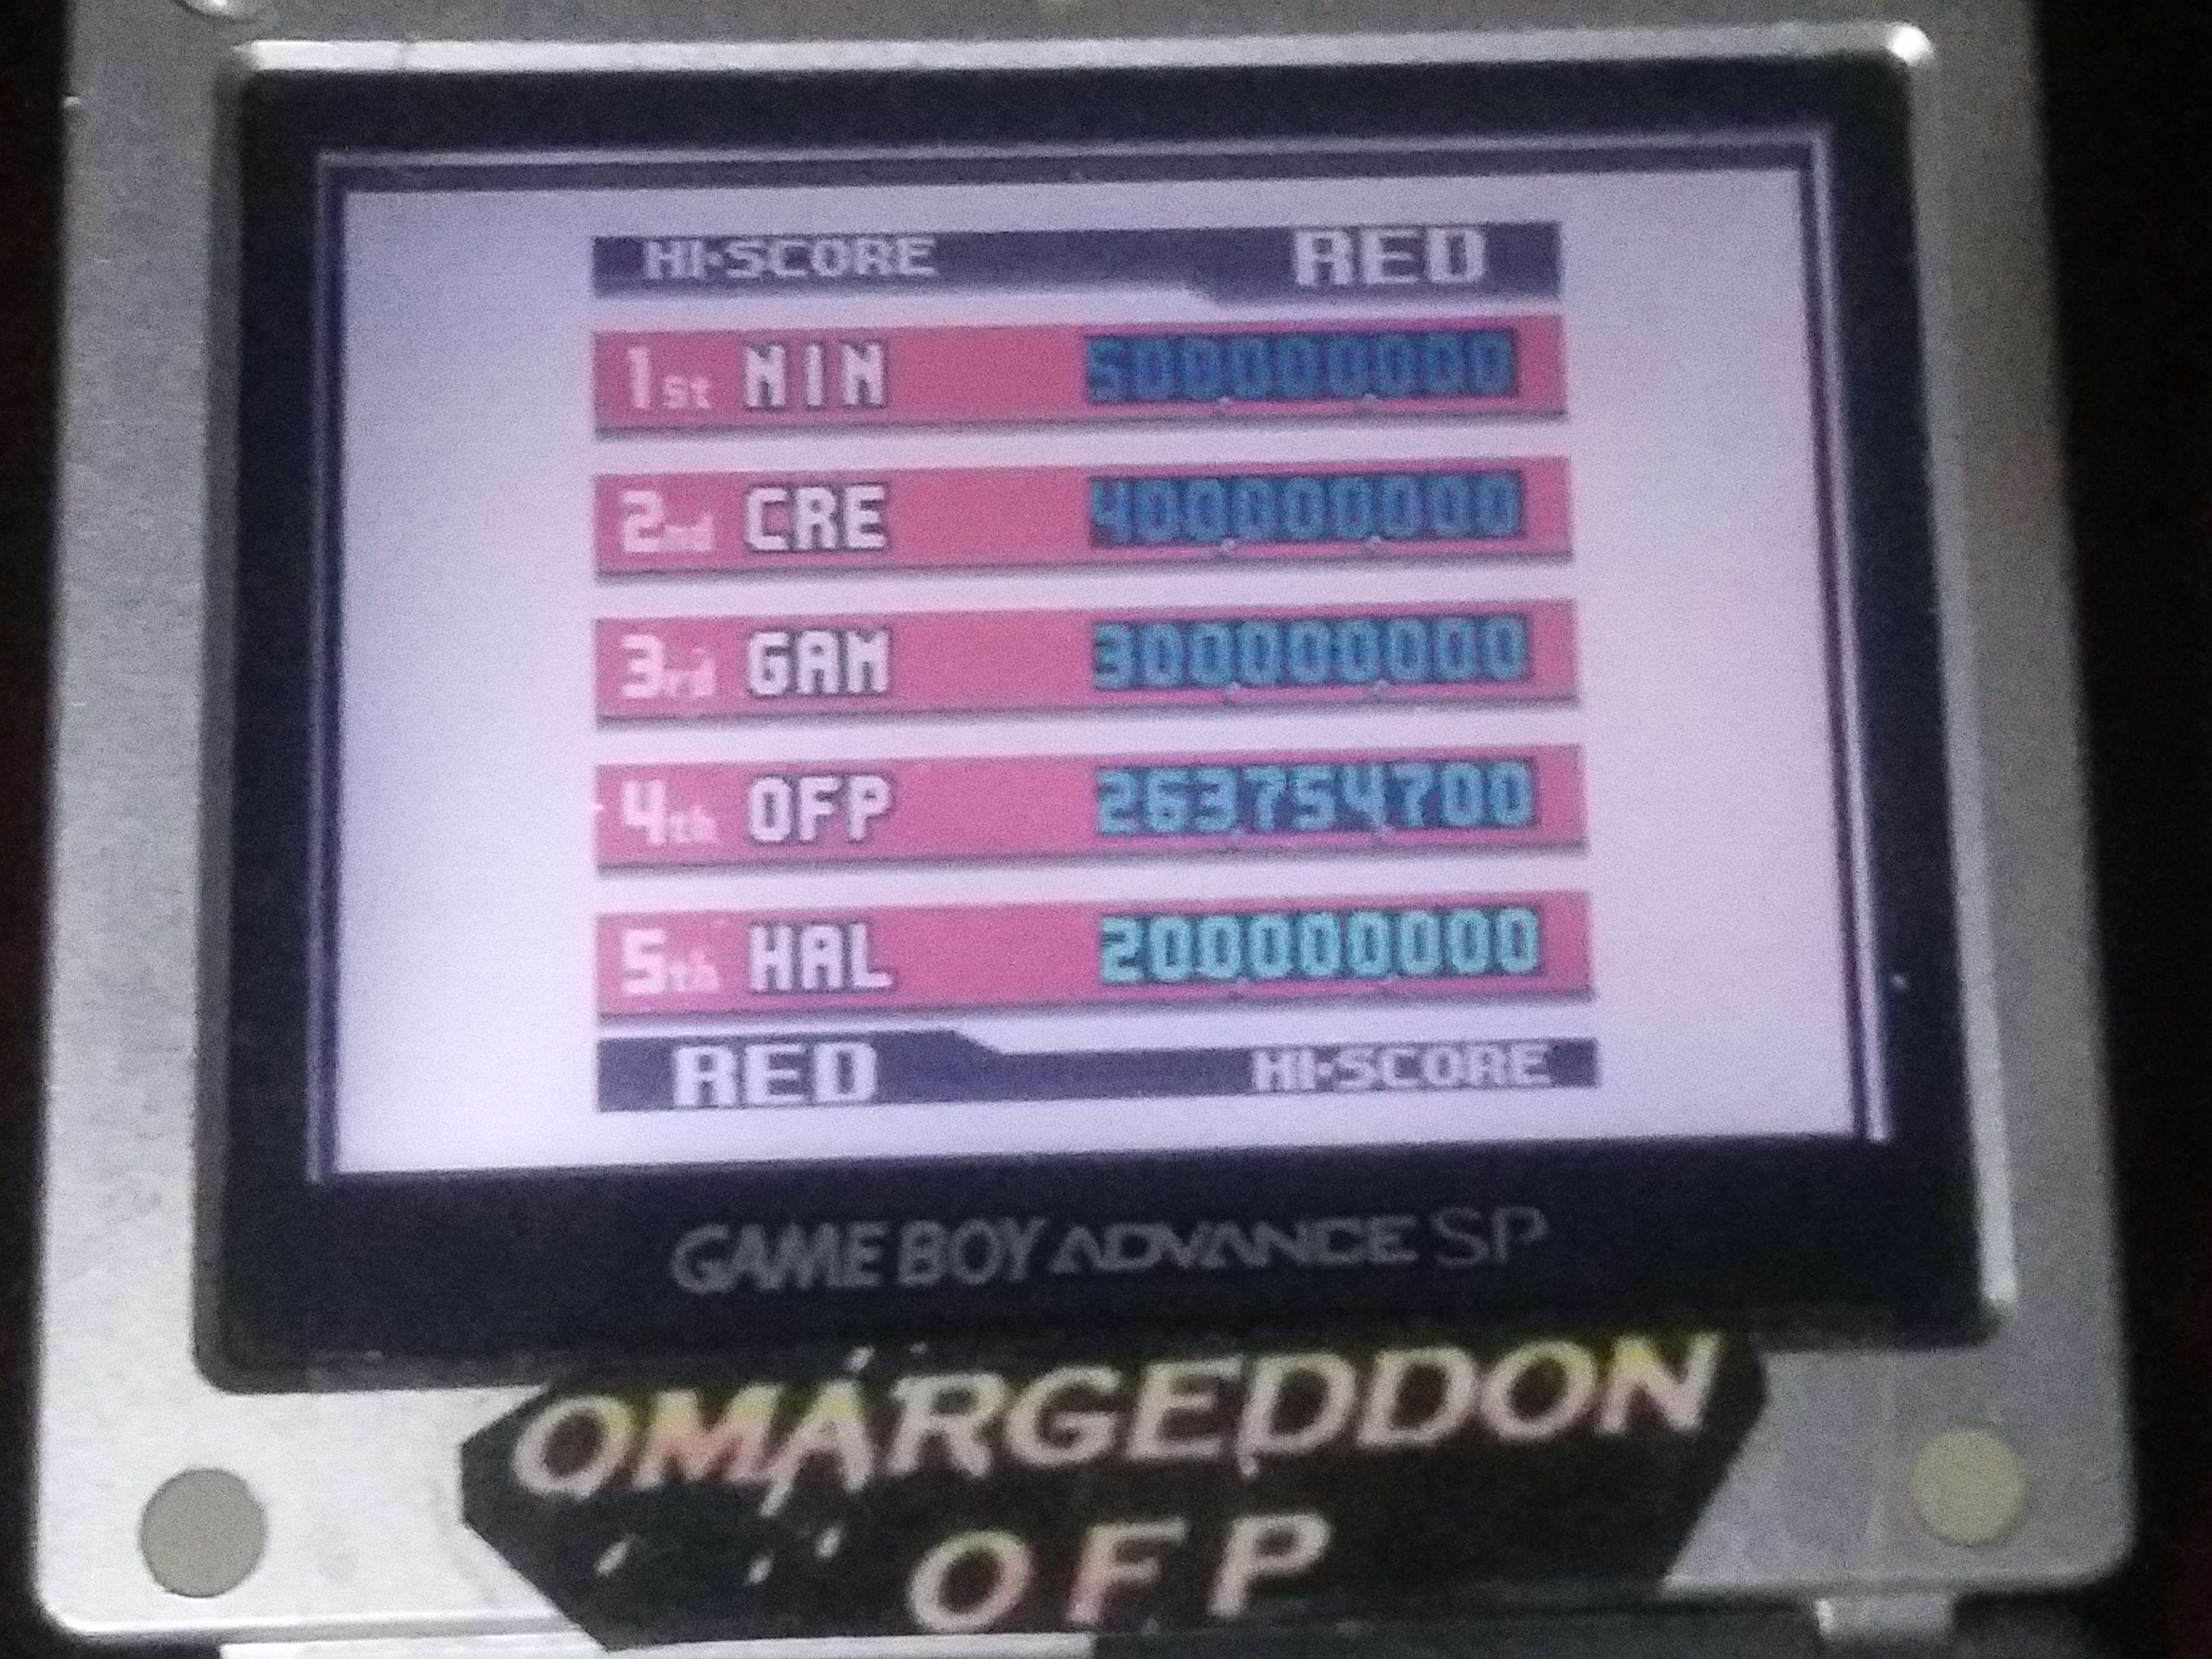 omargeddon: Pokemon Pinball: Red (Game Boy Color) 263,754,700 points on 2018-03-17 20:24:20